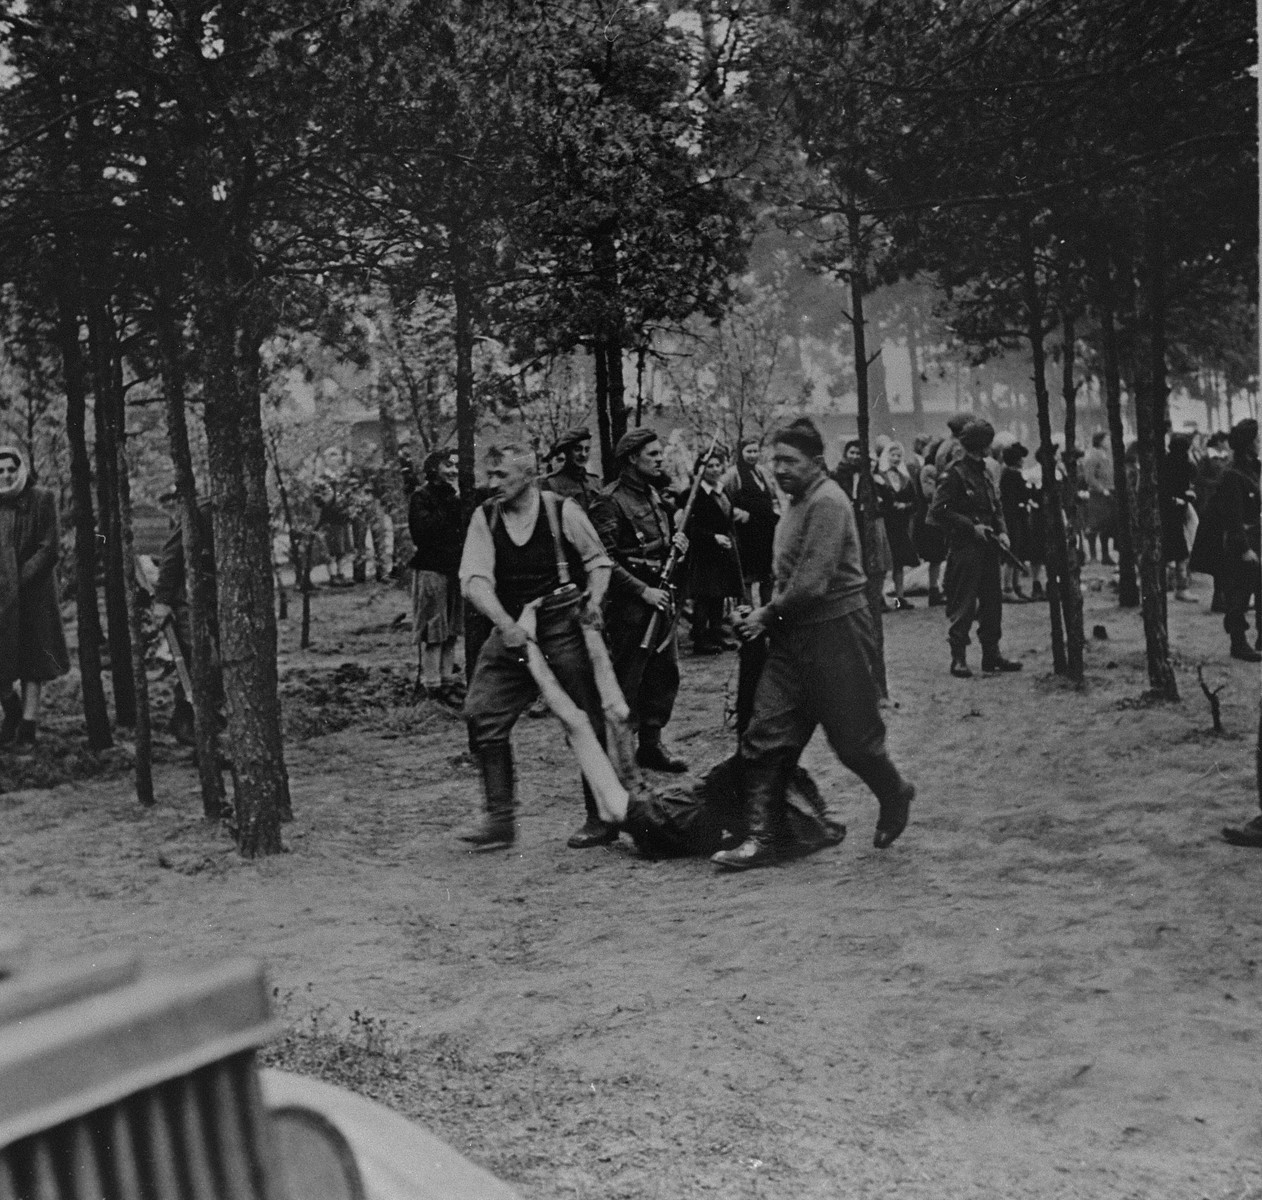 British soldiers force former SS guards to remove for burial the corpses of prisoners killed in Bergen-Belsen concentration camp.